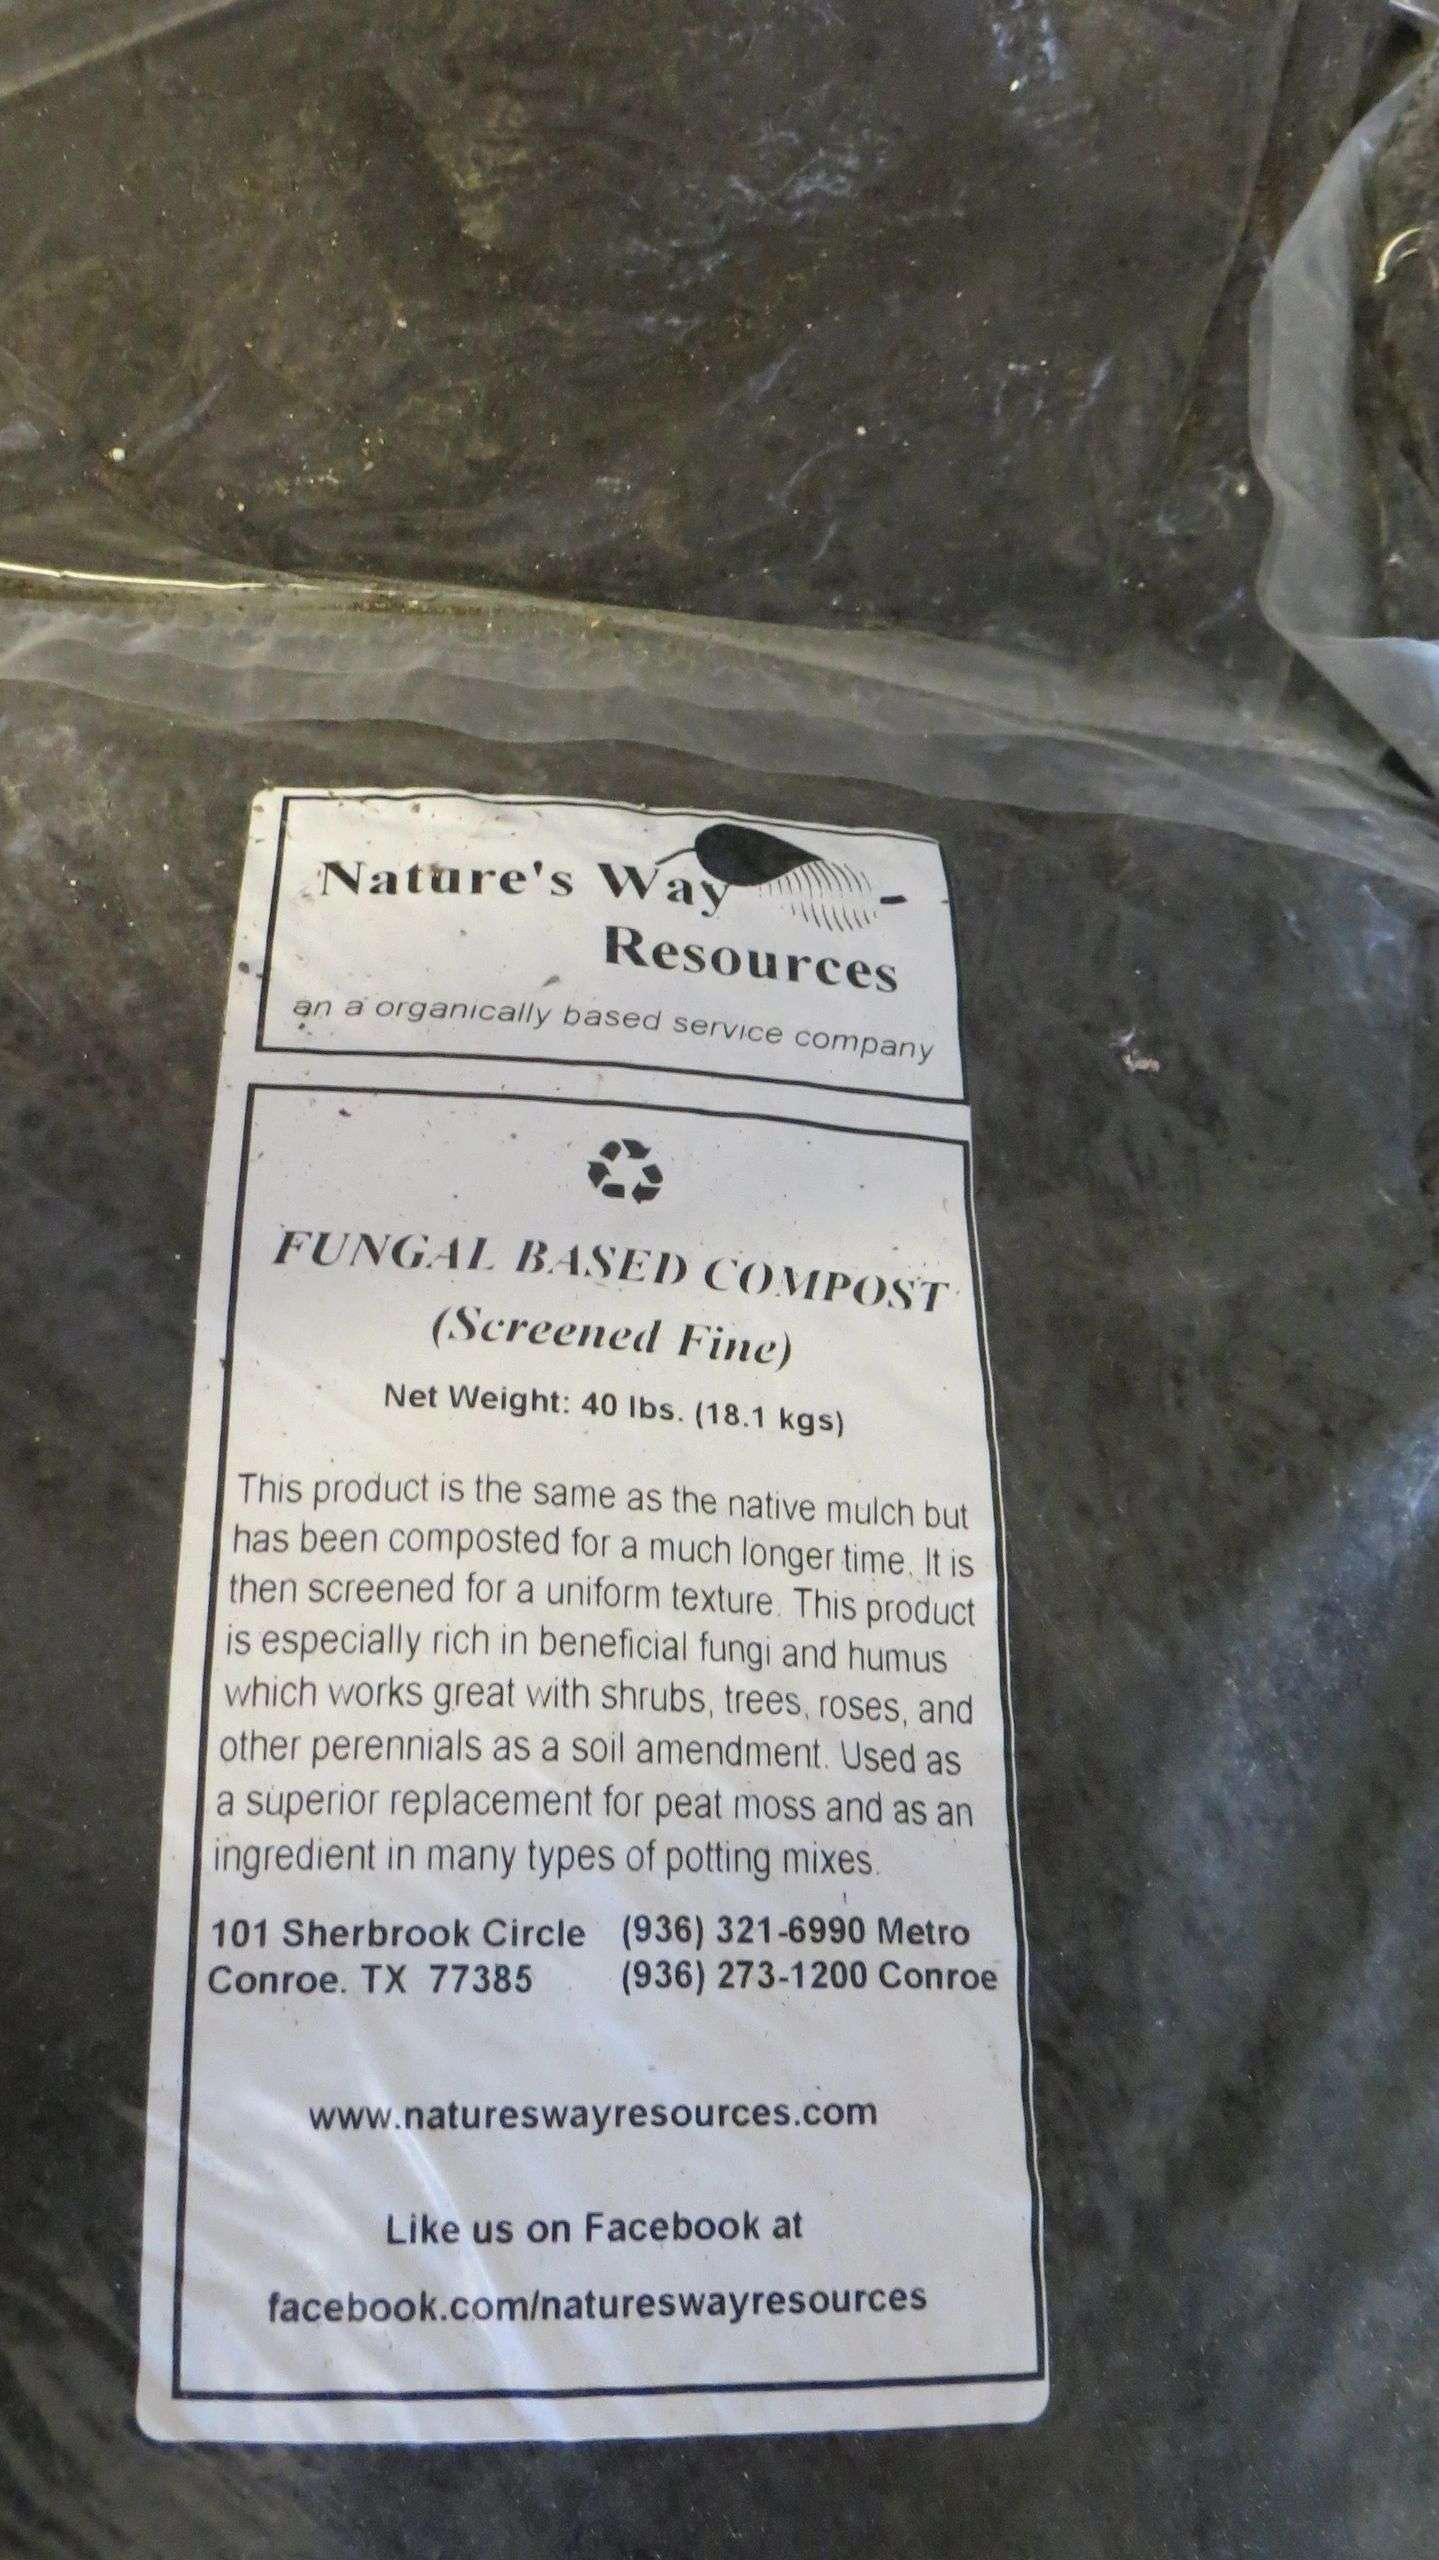 For The Organic Nerds in Dallas or Houston, Tx area. who want Fungal compost :